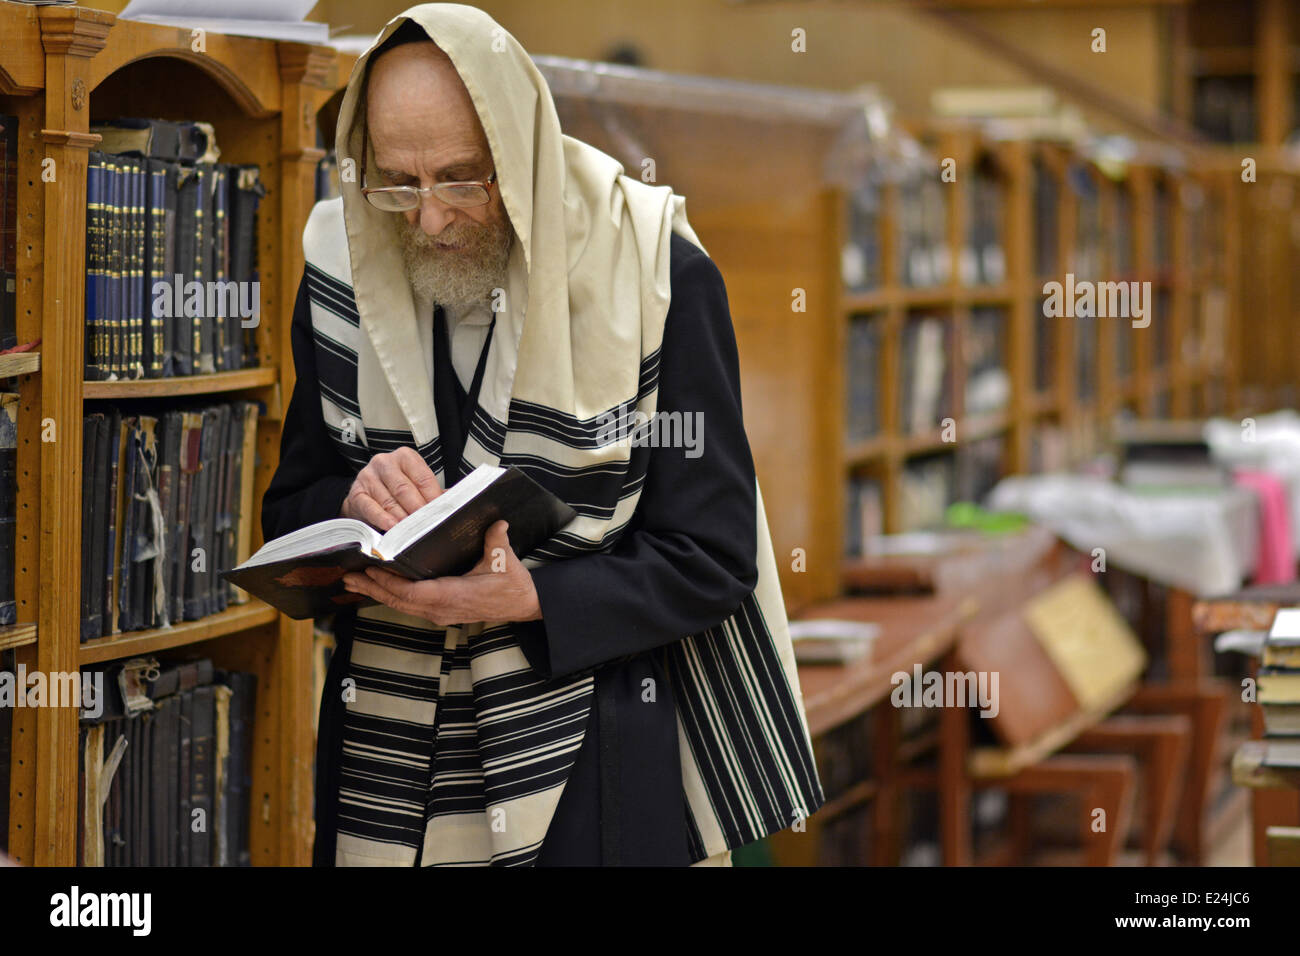 An older Jewish man at Passover morning prayers at the Lubavitch headquarters in Crown Heights, Brooklyn, New York - Stock Image